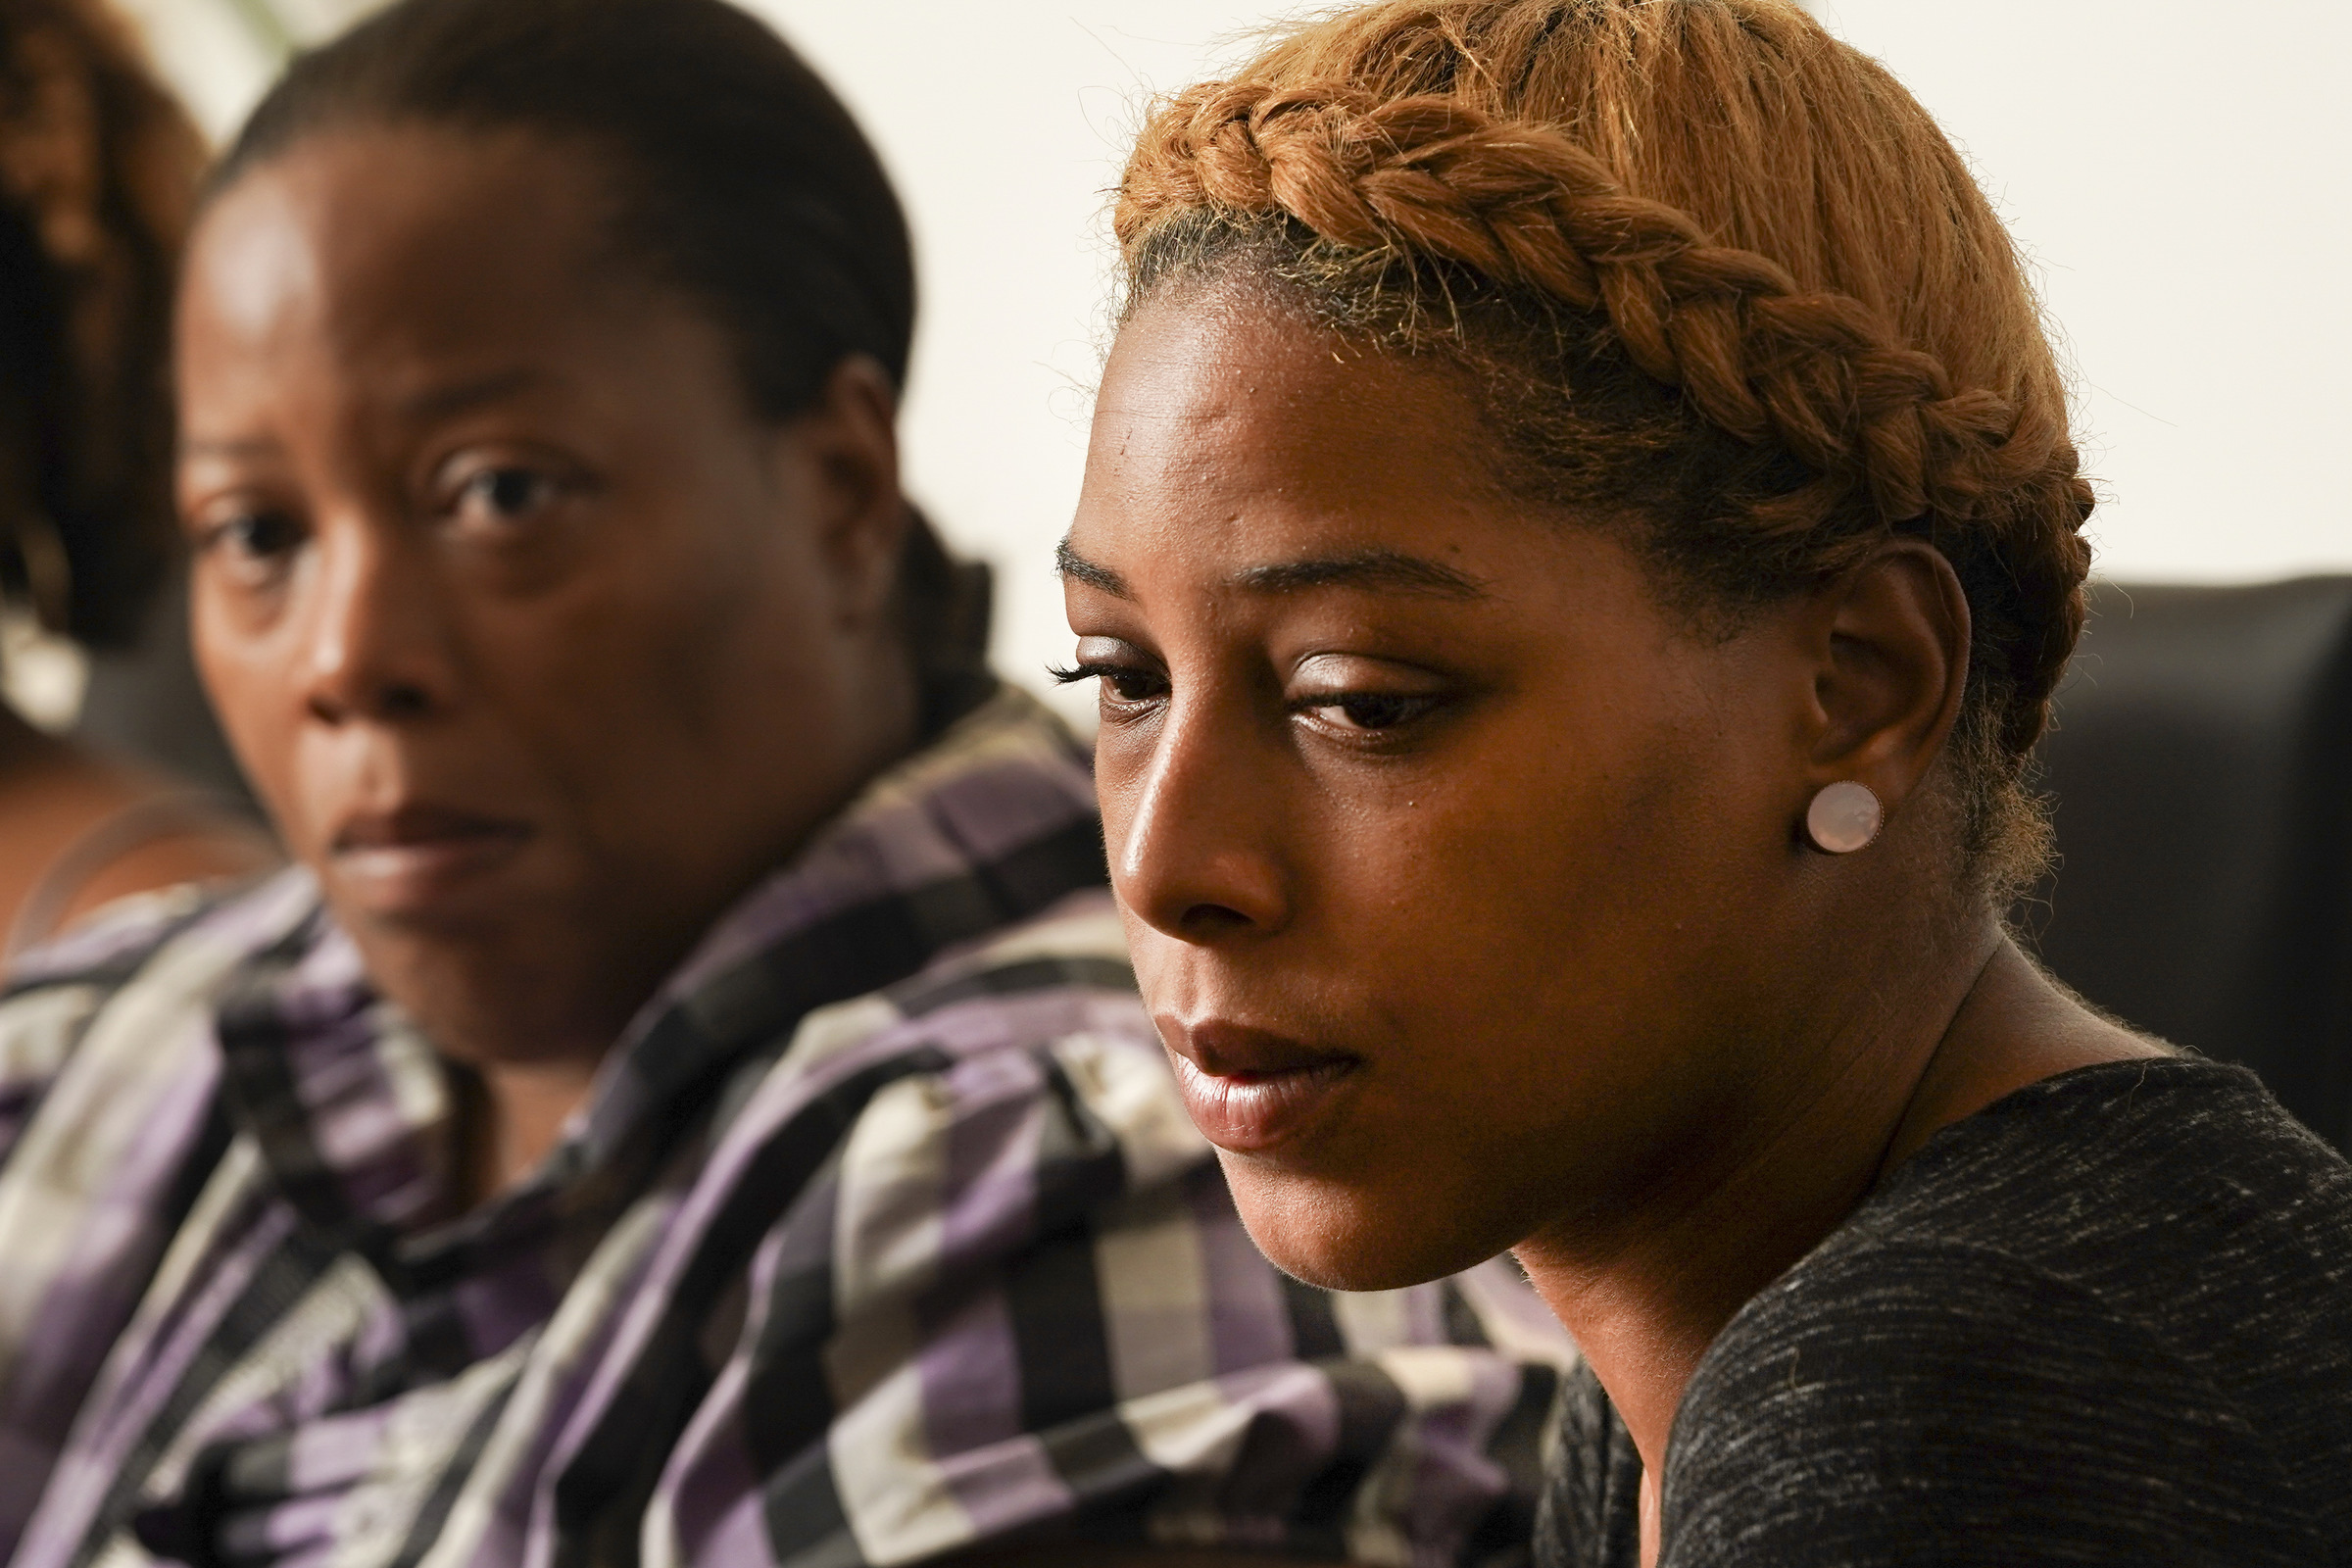 Rashena Carter, left, and her daughter Letoya Ramseure, right, meet with advocates to discuss Ramseure´s case, in which she fatally shot her ex-boyfriend with his own gun after he burst into her home. Ramseure faced third-degree murder charge by the Krasner administration, though a judge said at most it was voluntary manslaughter.